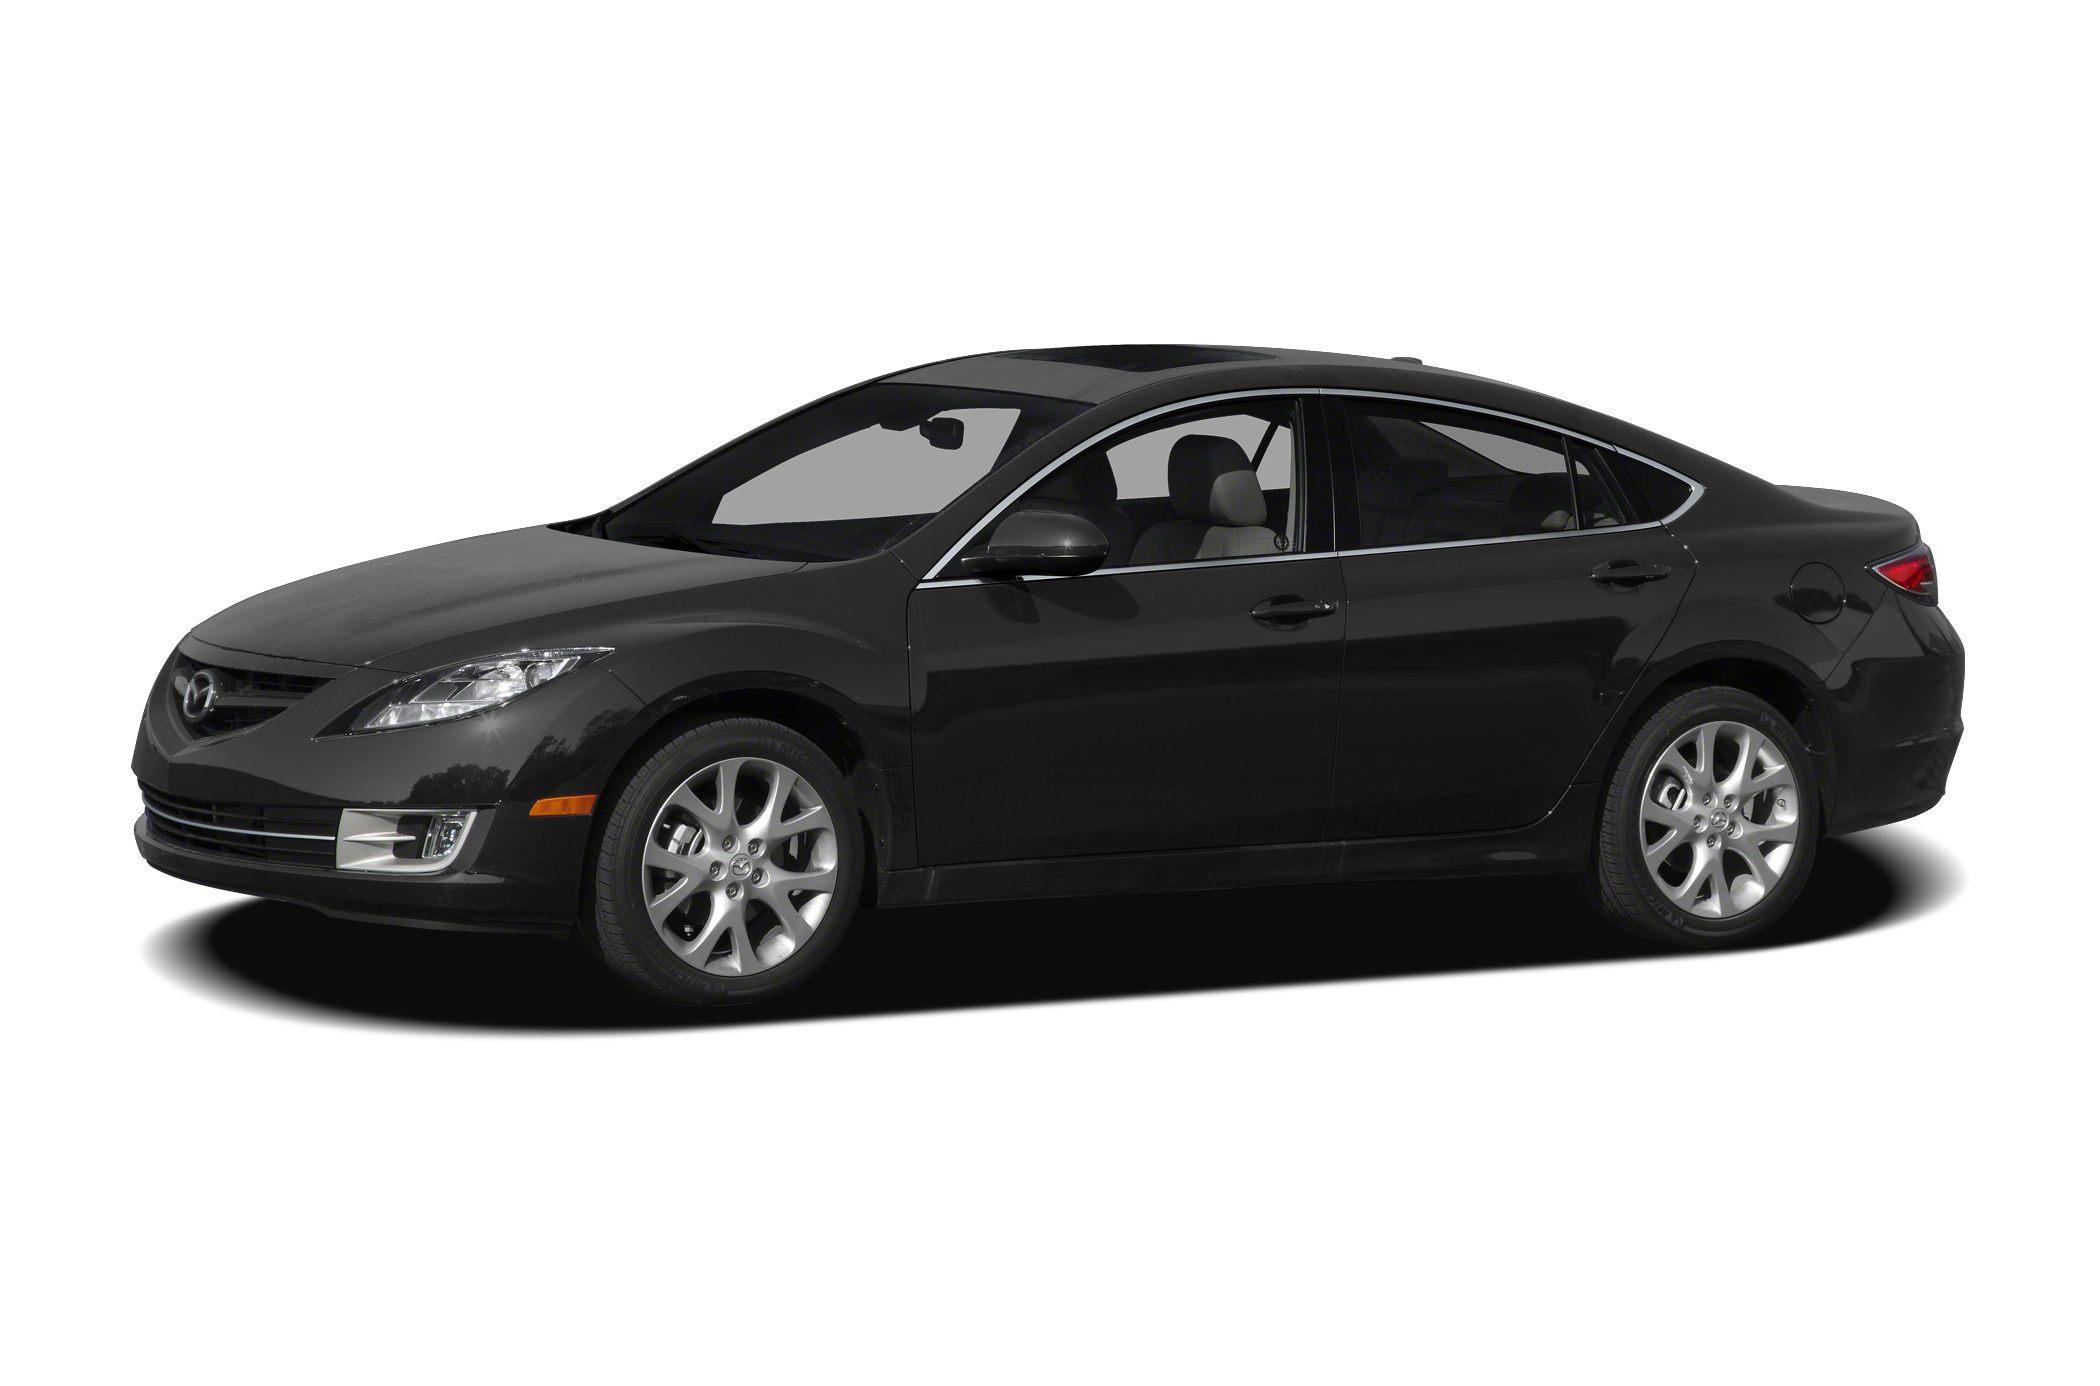 2012 Mazda Mazda6 I Sport Sedan for sale in Morrow for $11,995 with 64,582 miles.